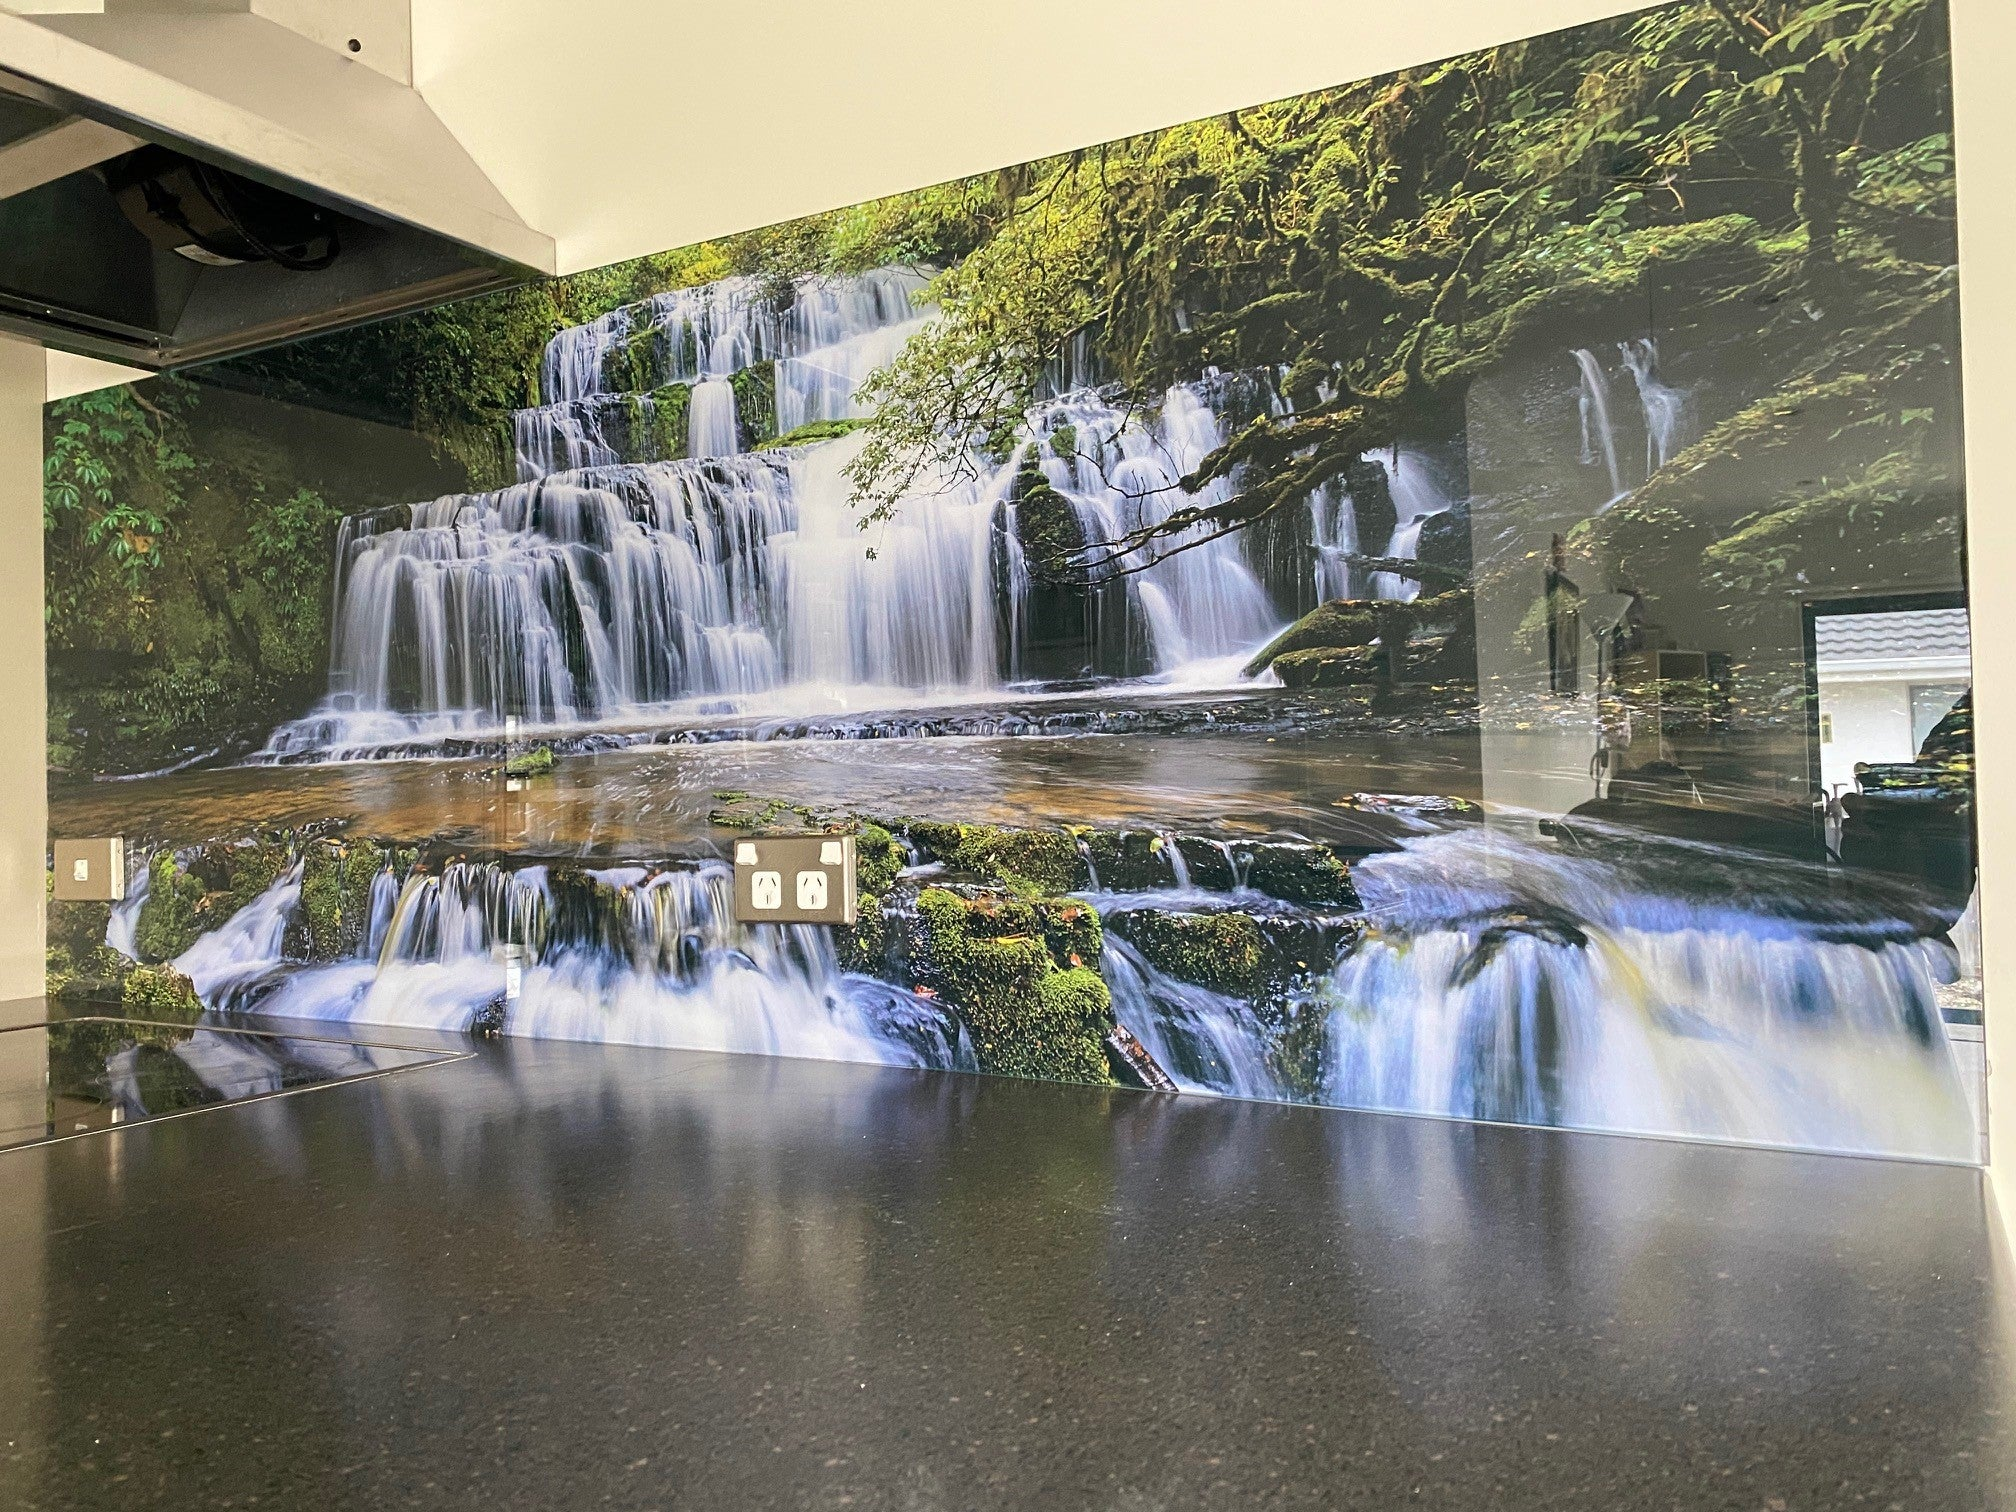 Image picture glass splashback - catlins - purakanui falls - made in new zealand - escape glass